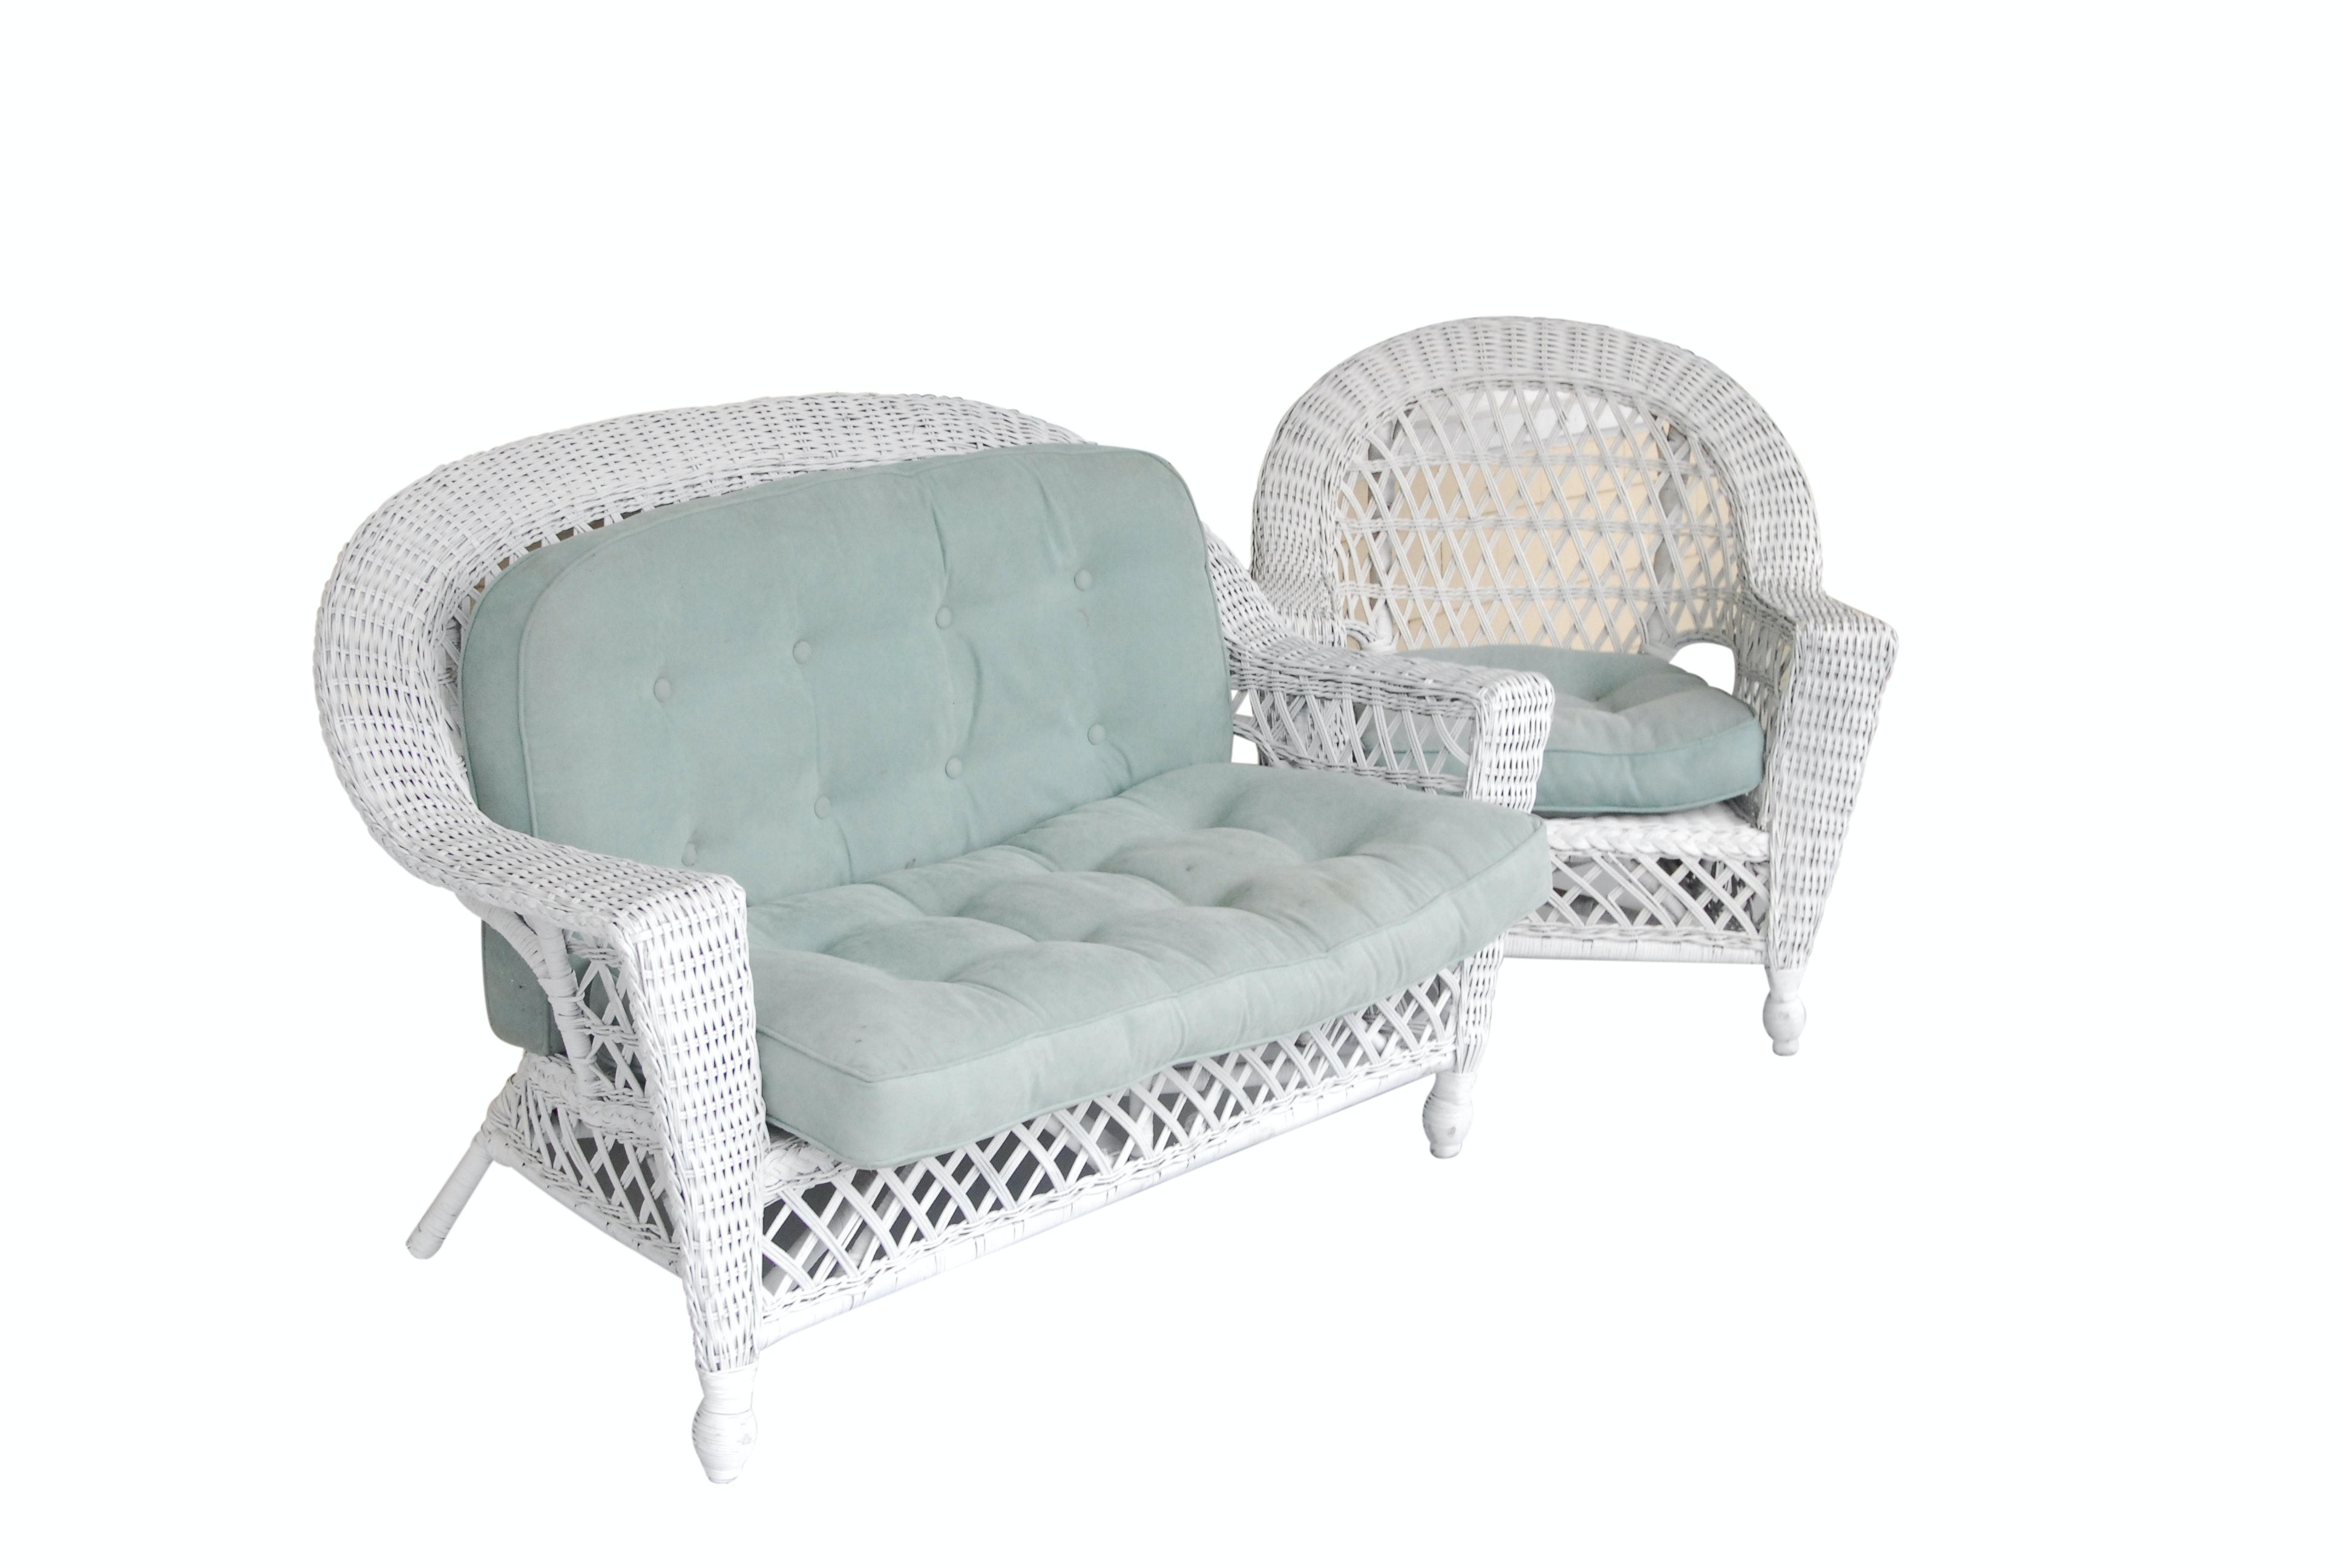 Wicker Loveseat and Armchair